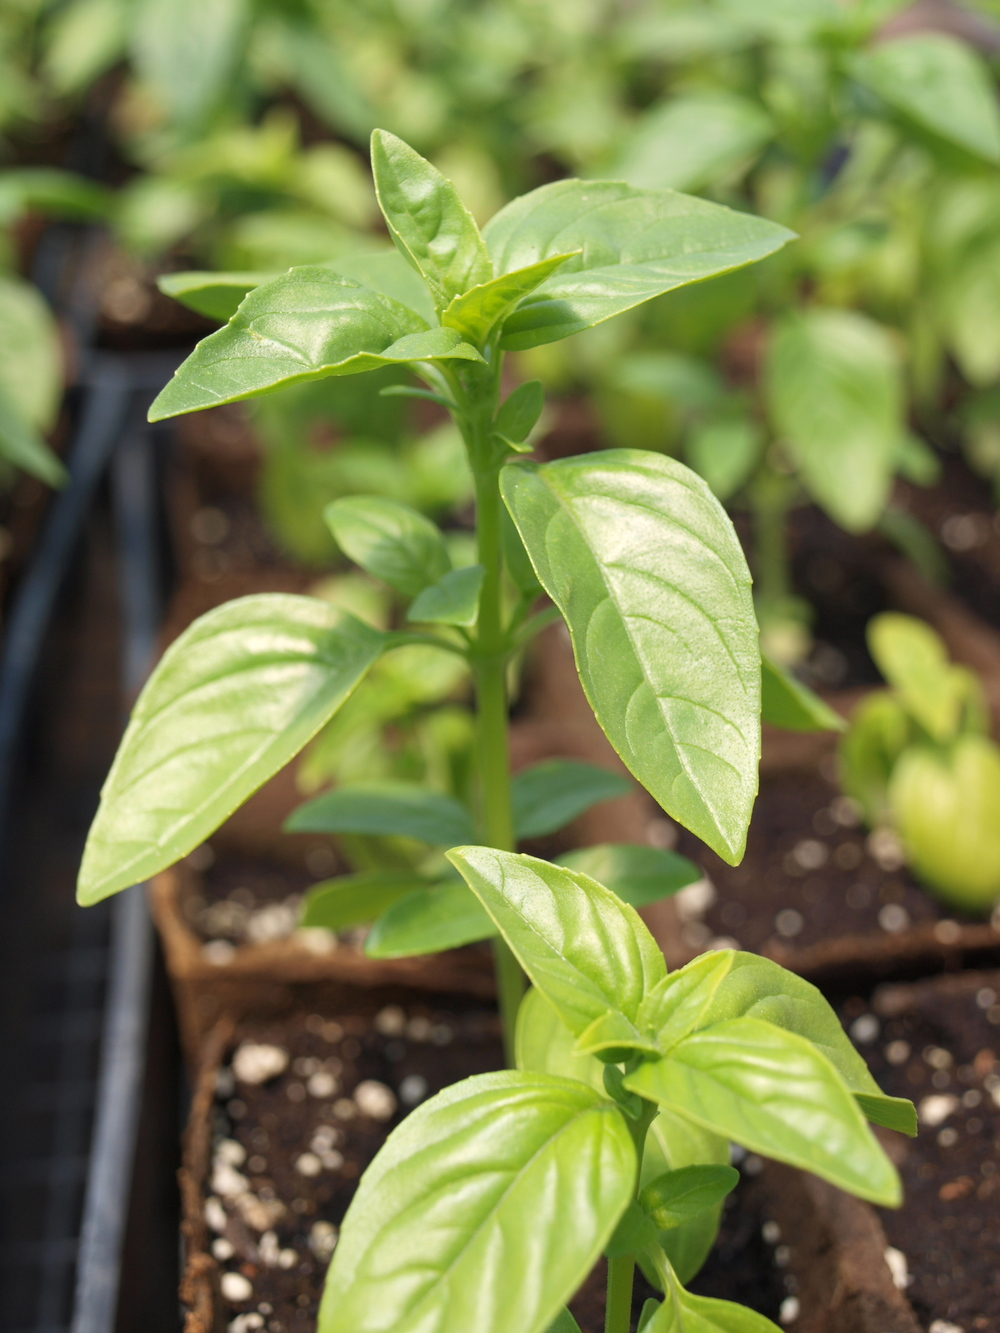 A young basil seedling.